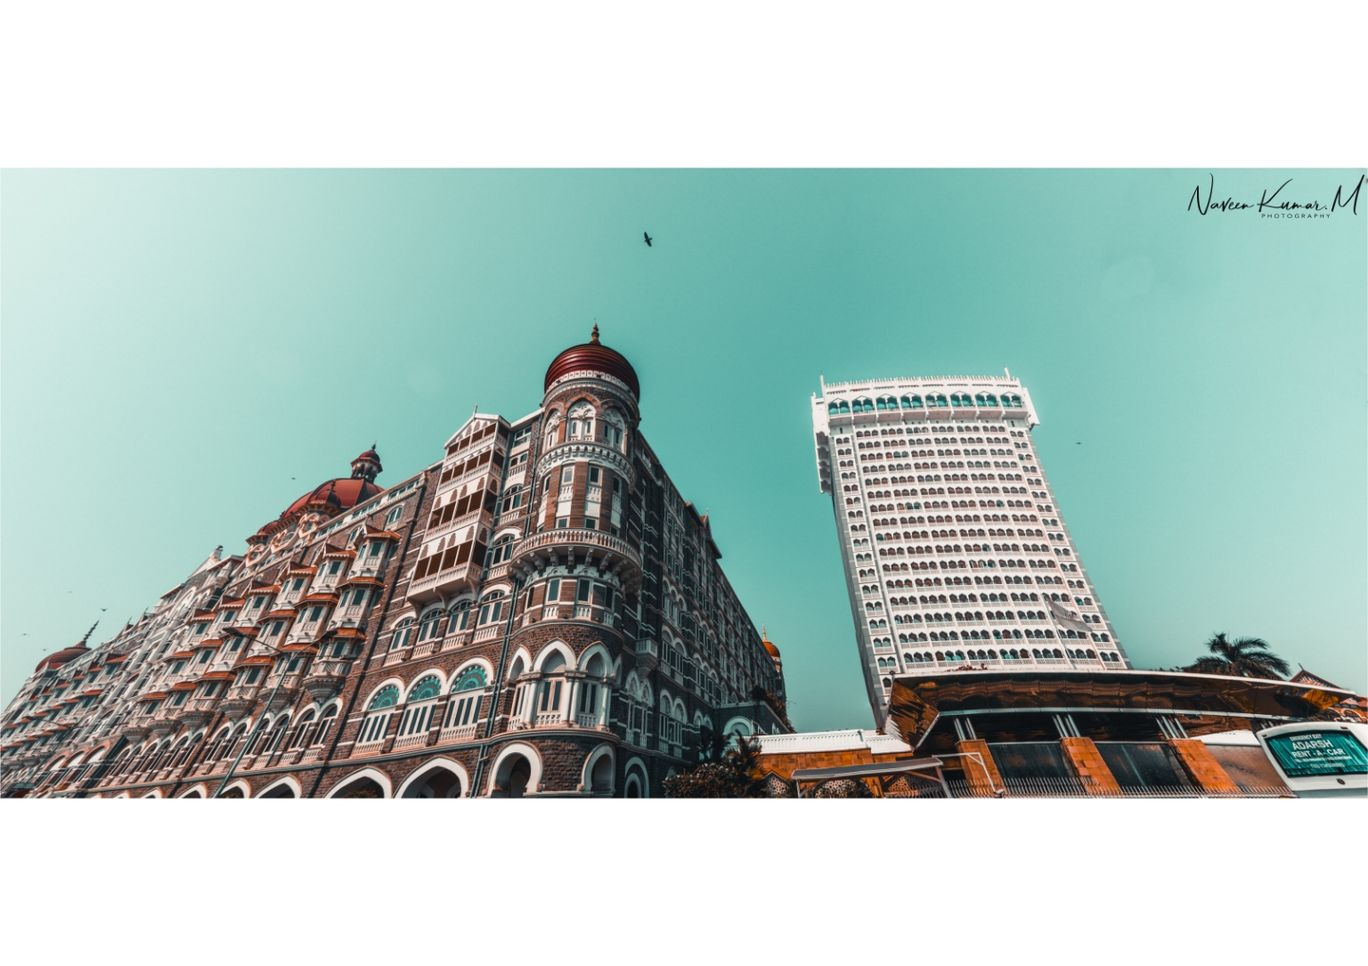 Photo of The Taj Mahal Palace By Naveen kumar